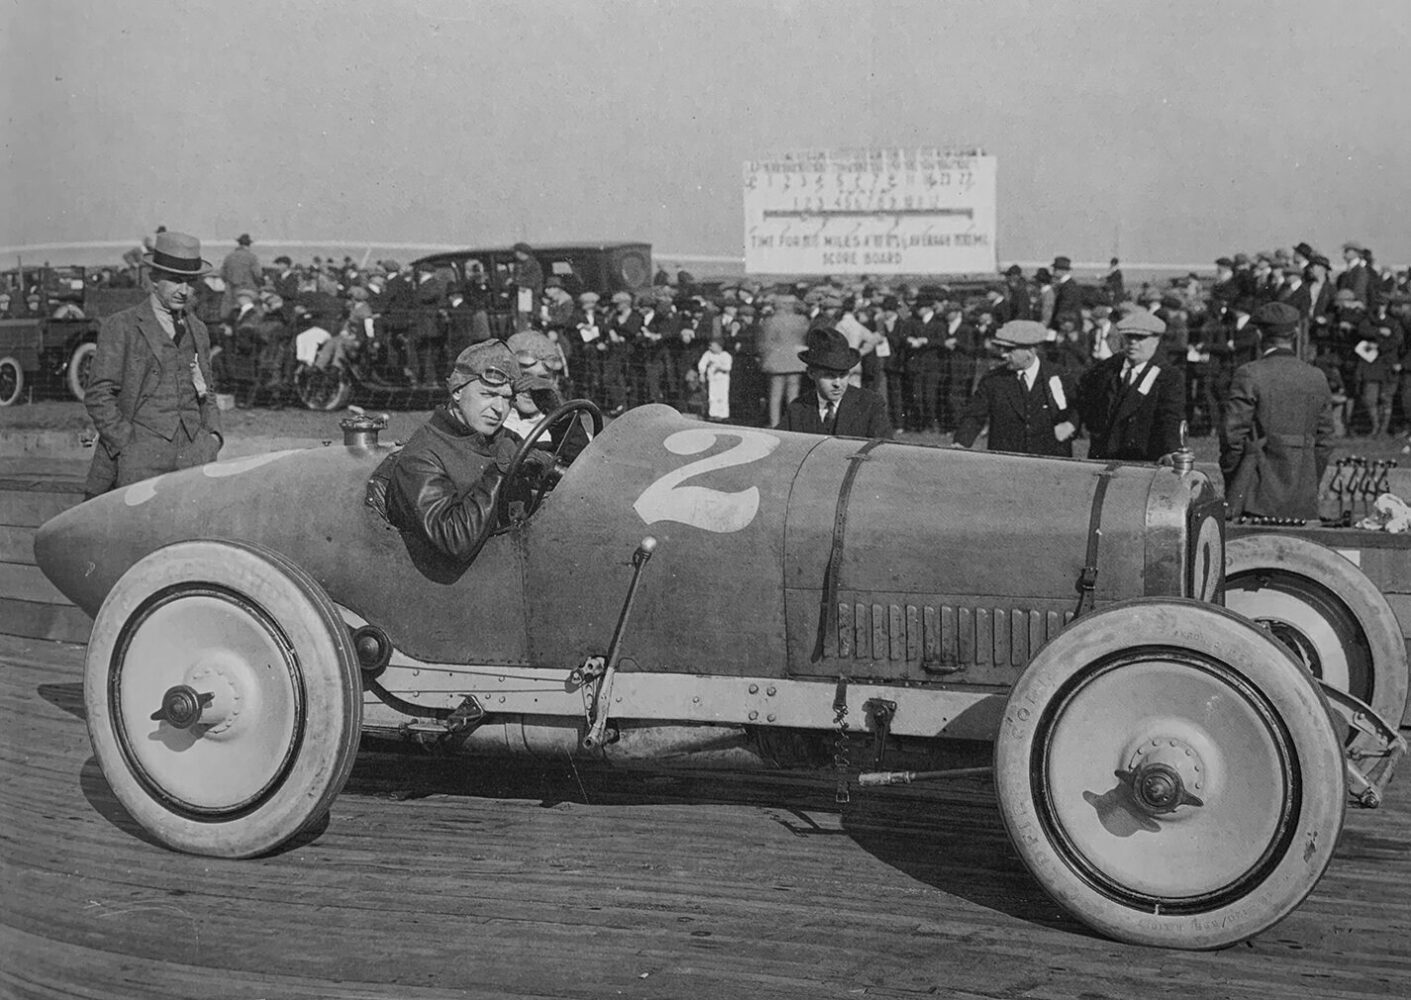 Race car in the 1920s